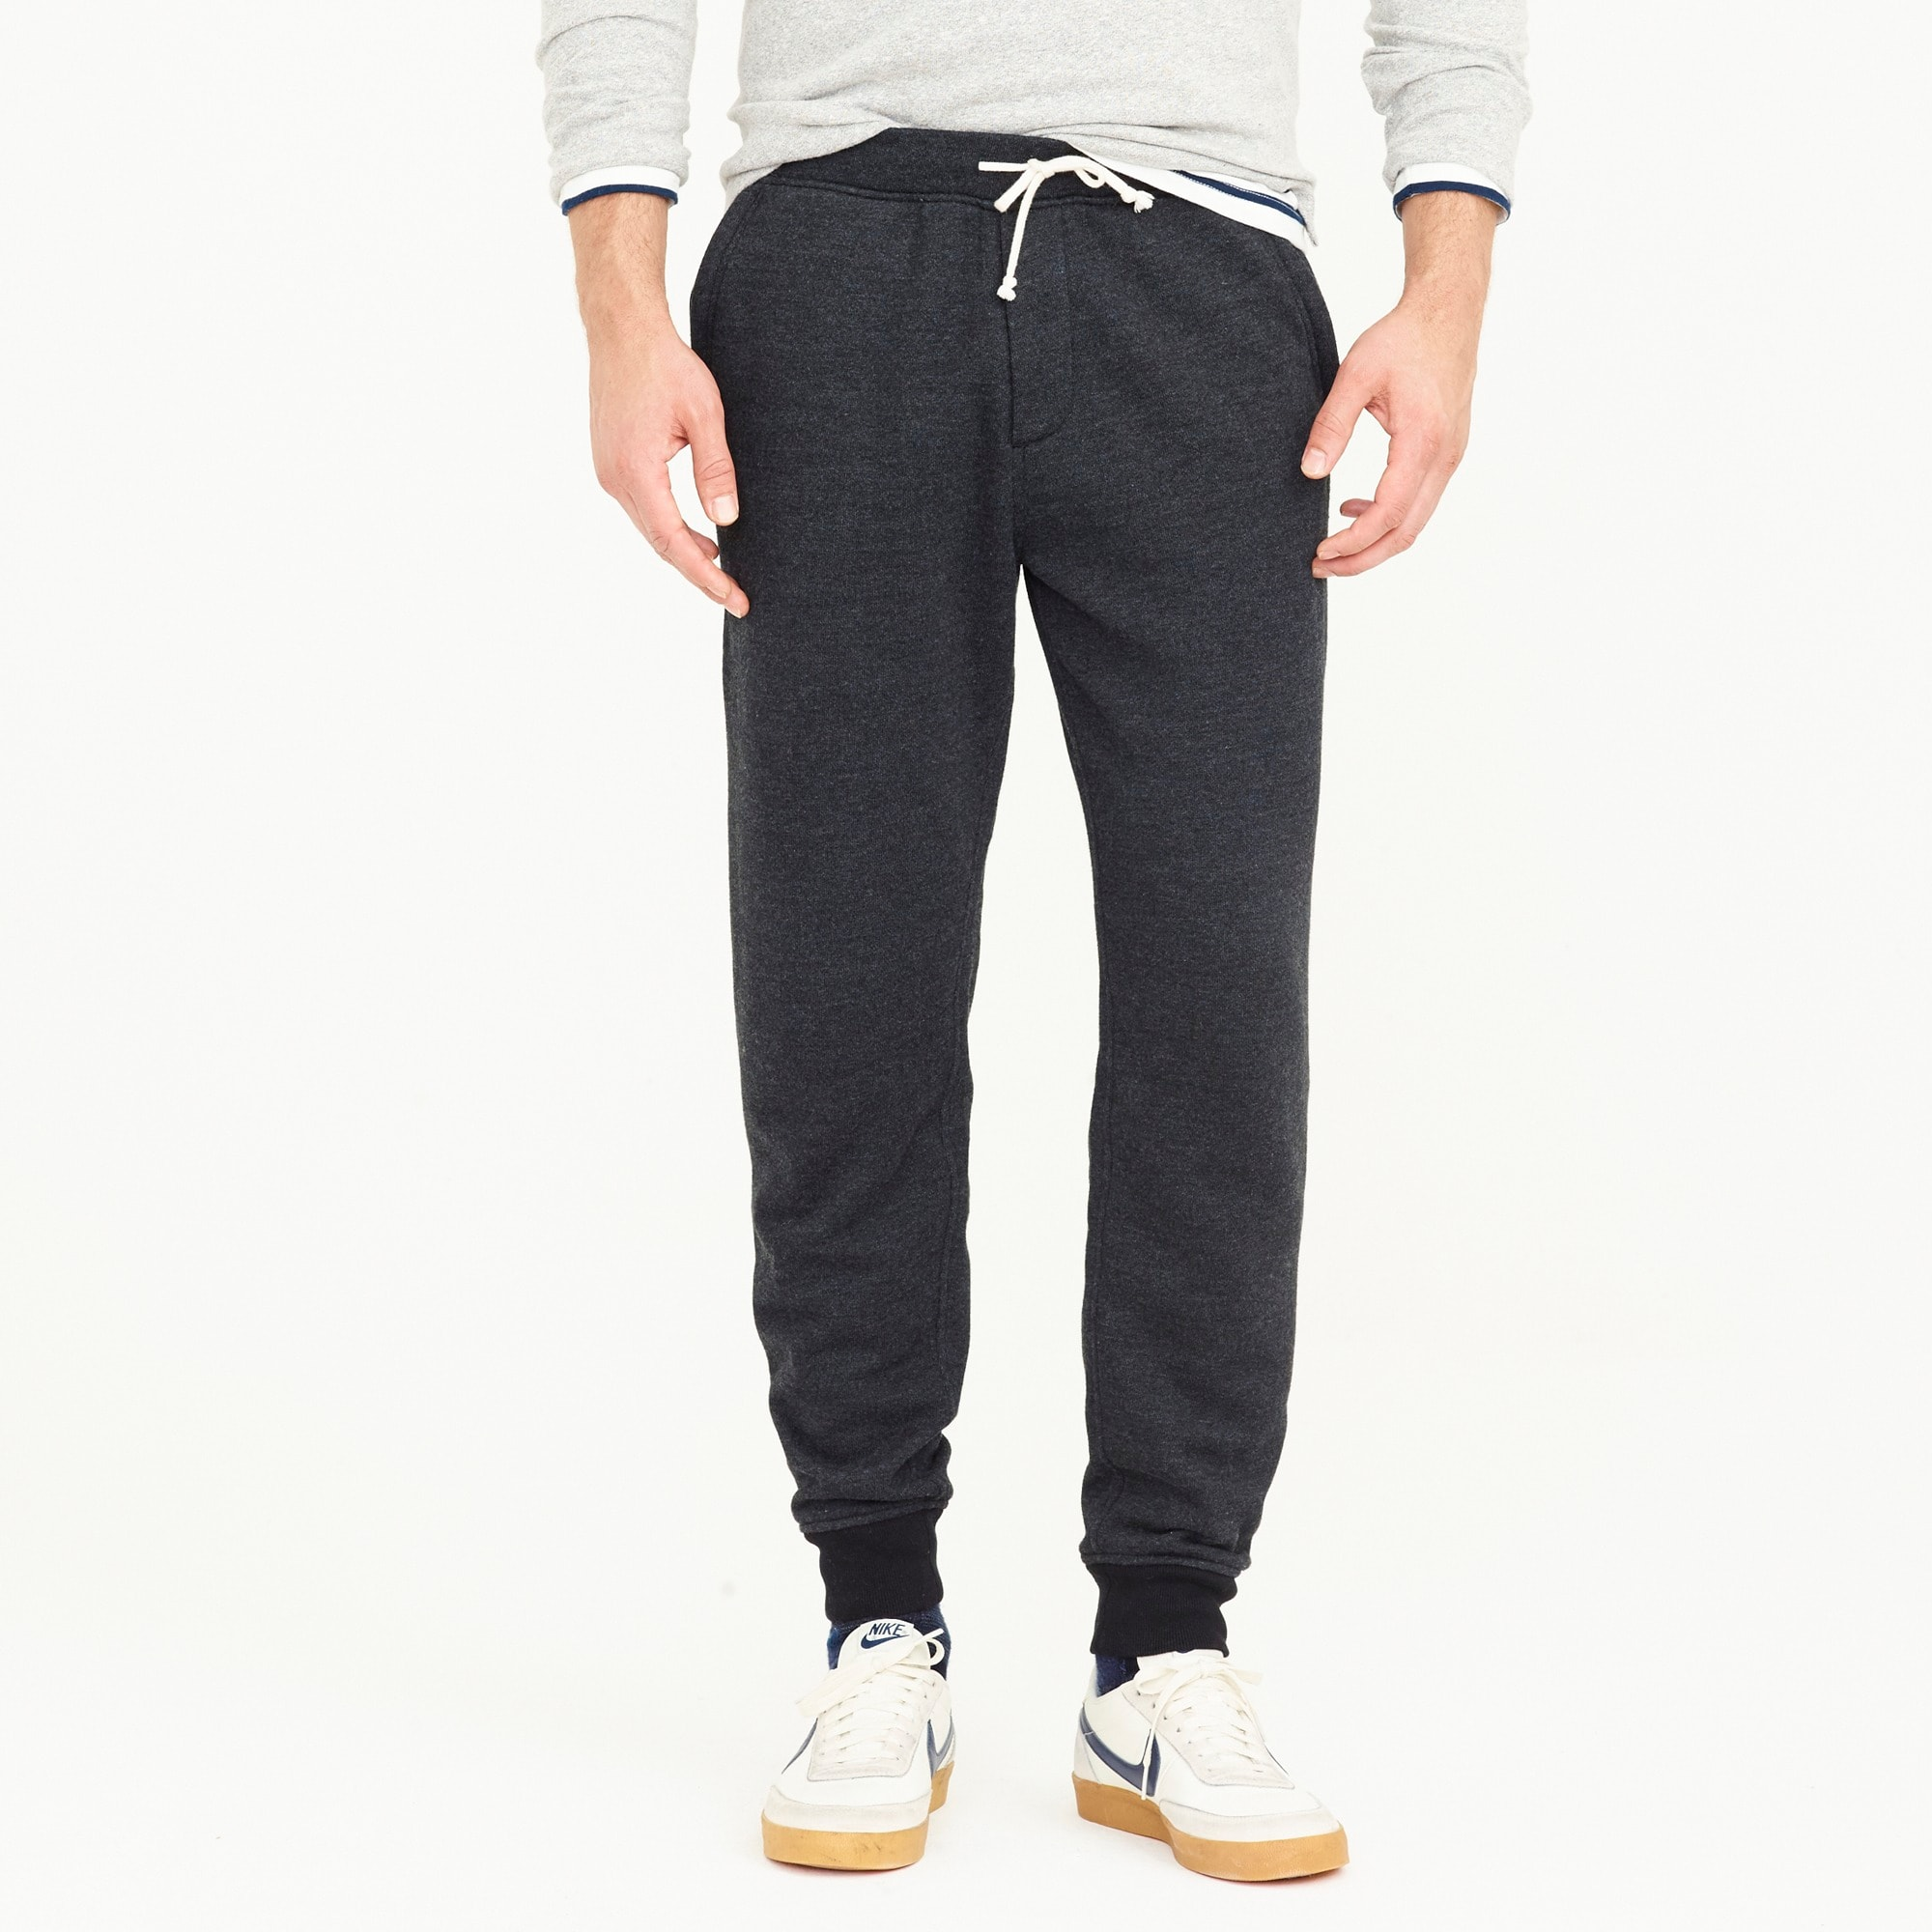 Image 1 for Slim classic zip-pocket sweatpant